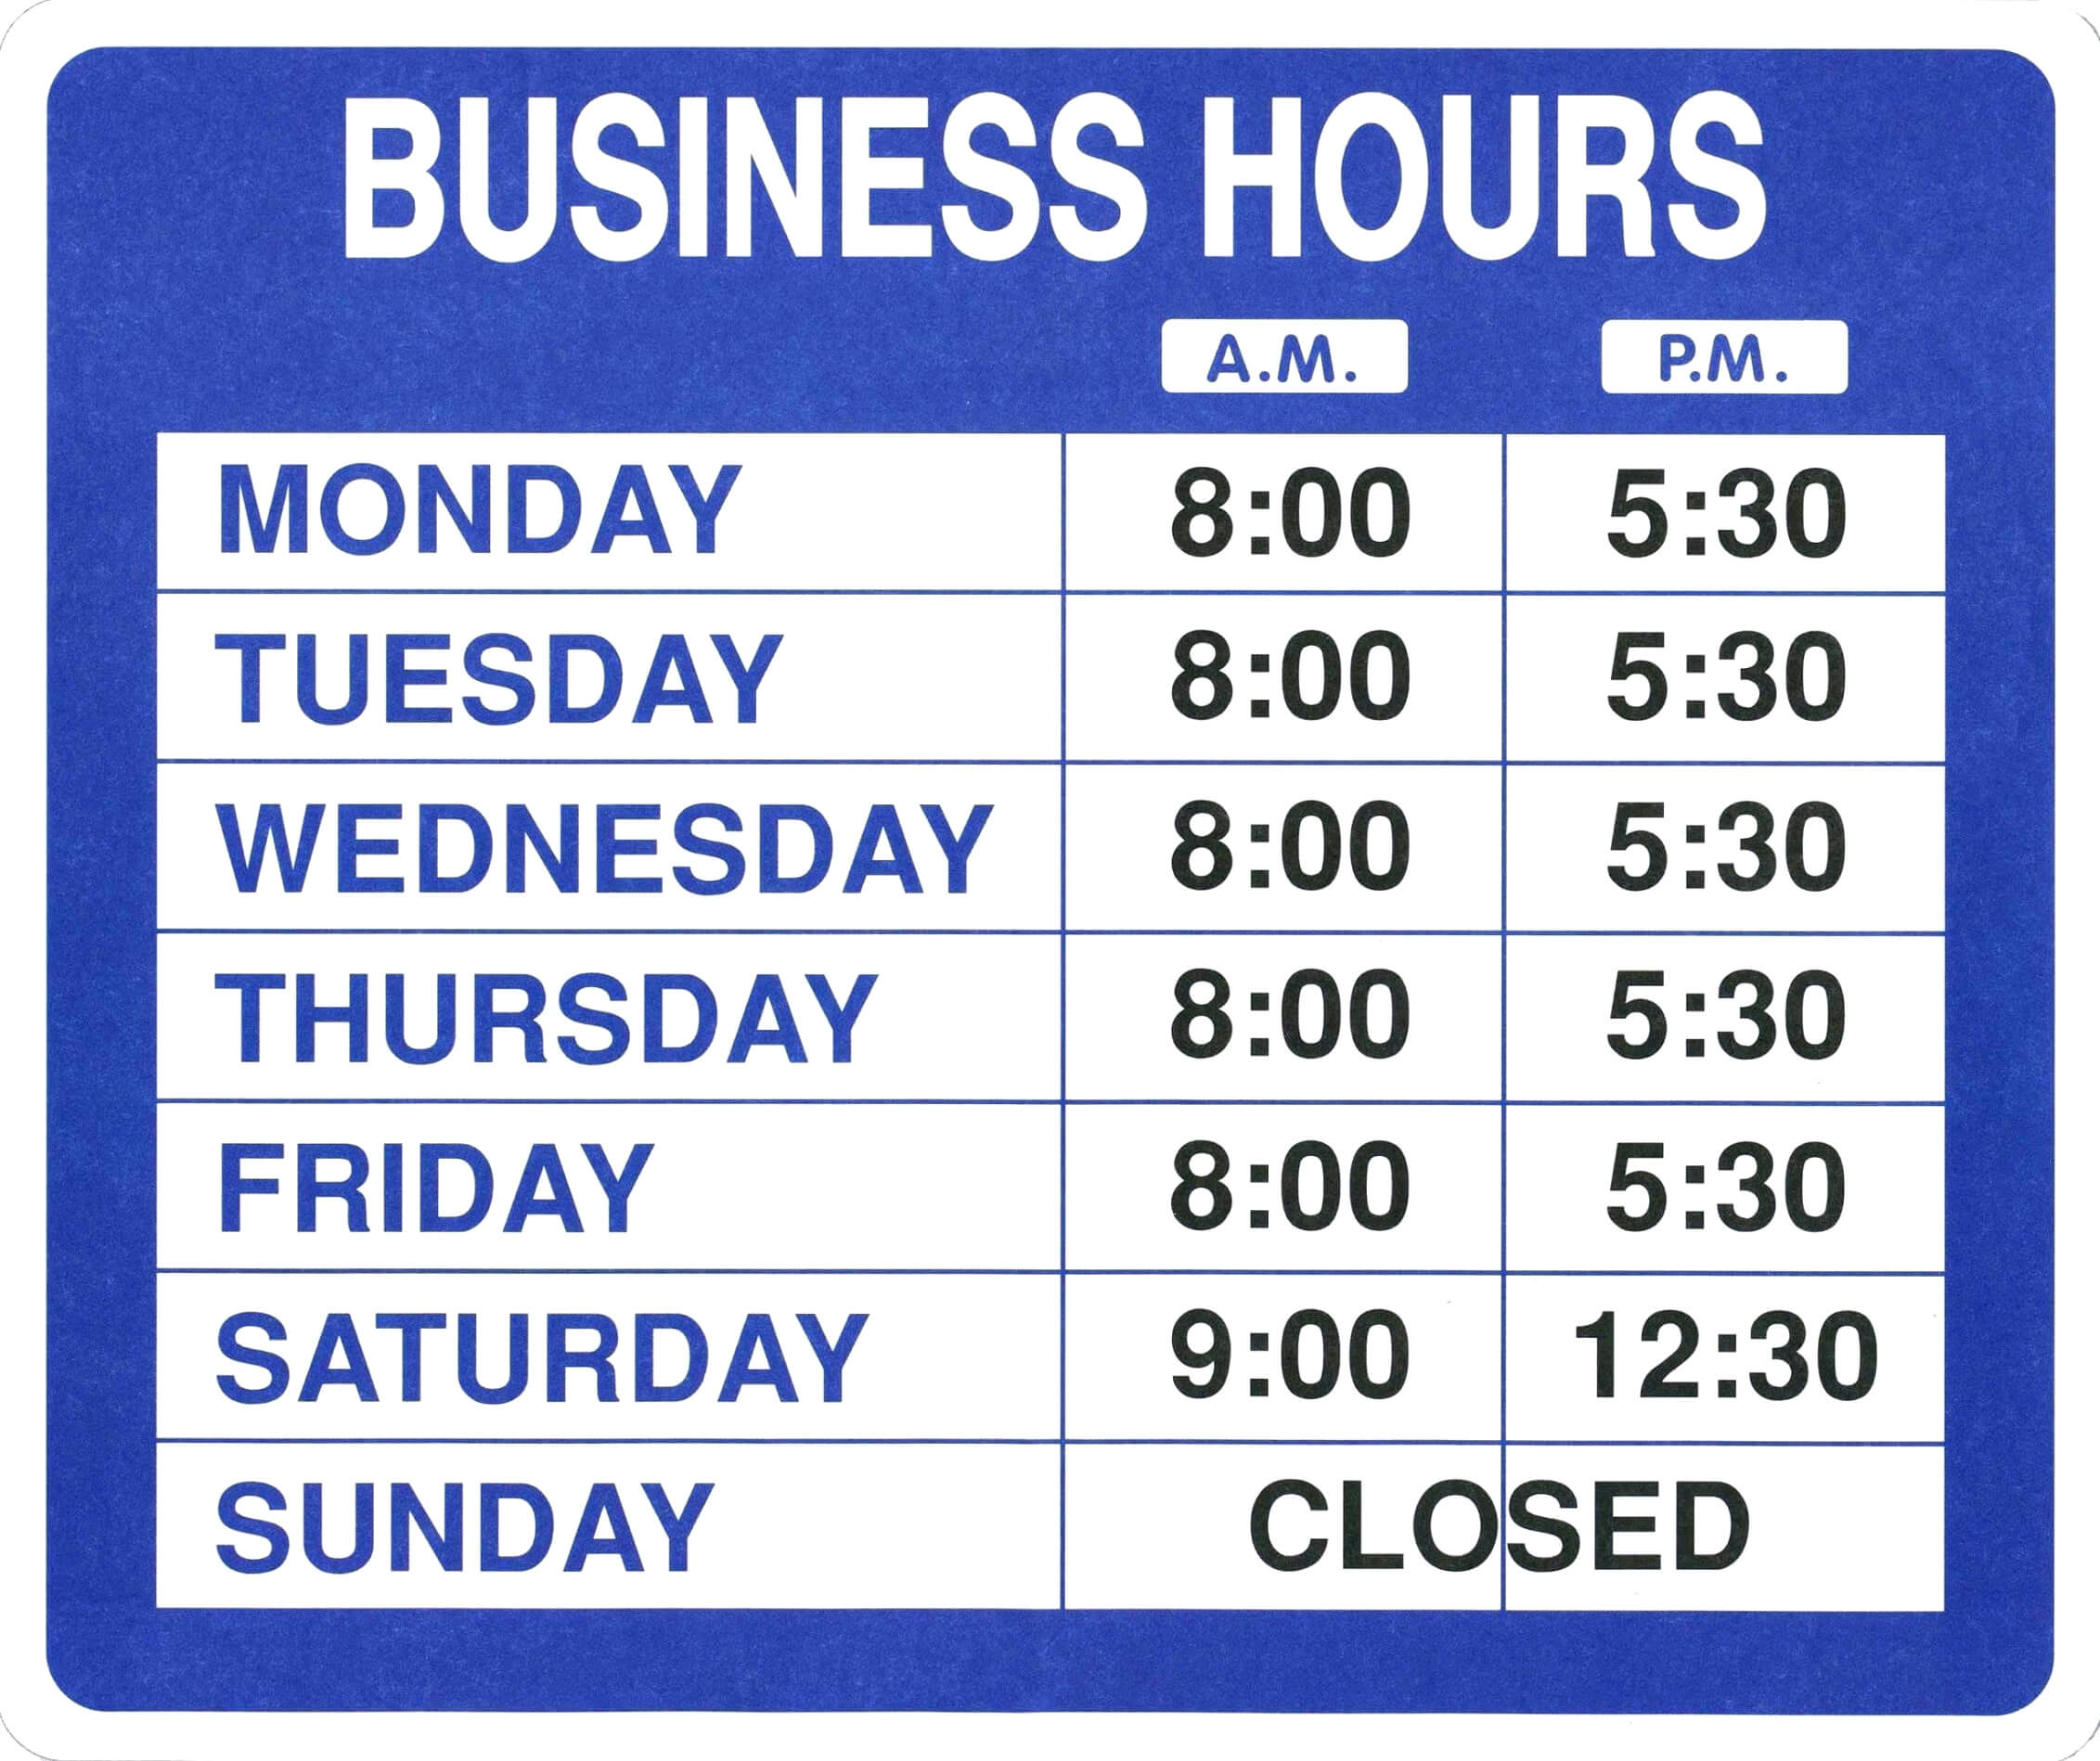 005 Template Ideas Business Hours Microsoft Word Office With Regard To Business Hours Template Word